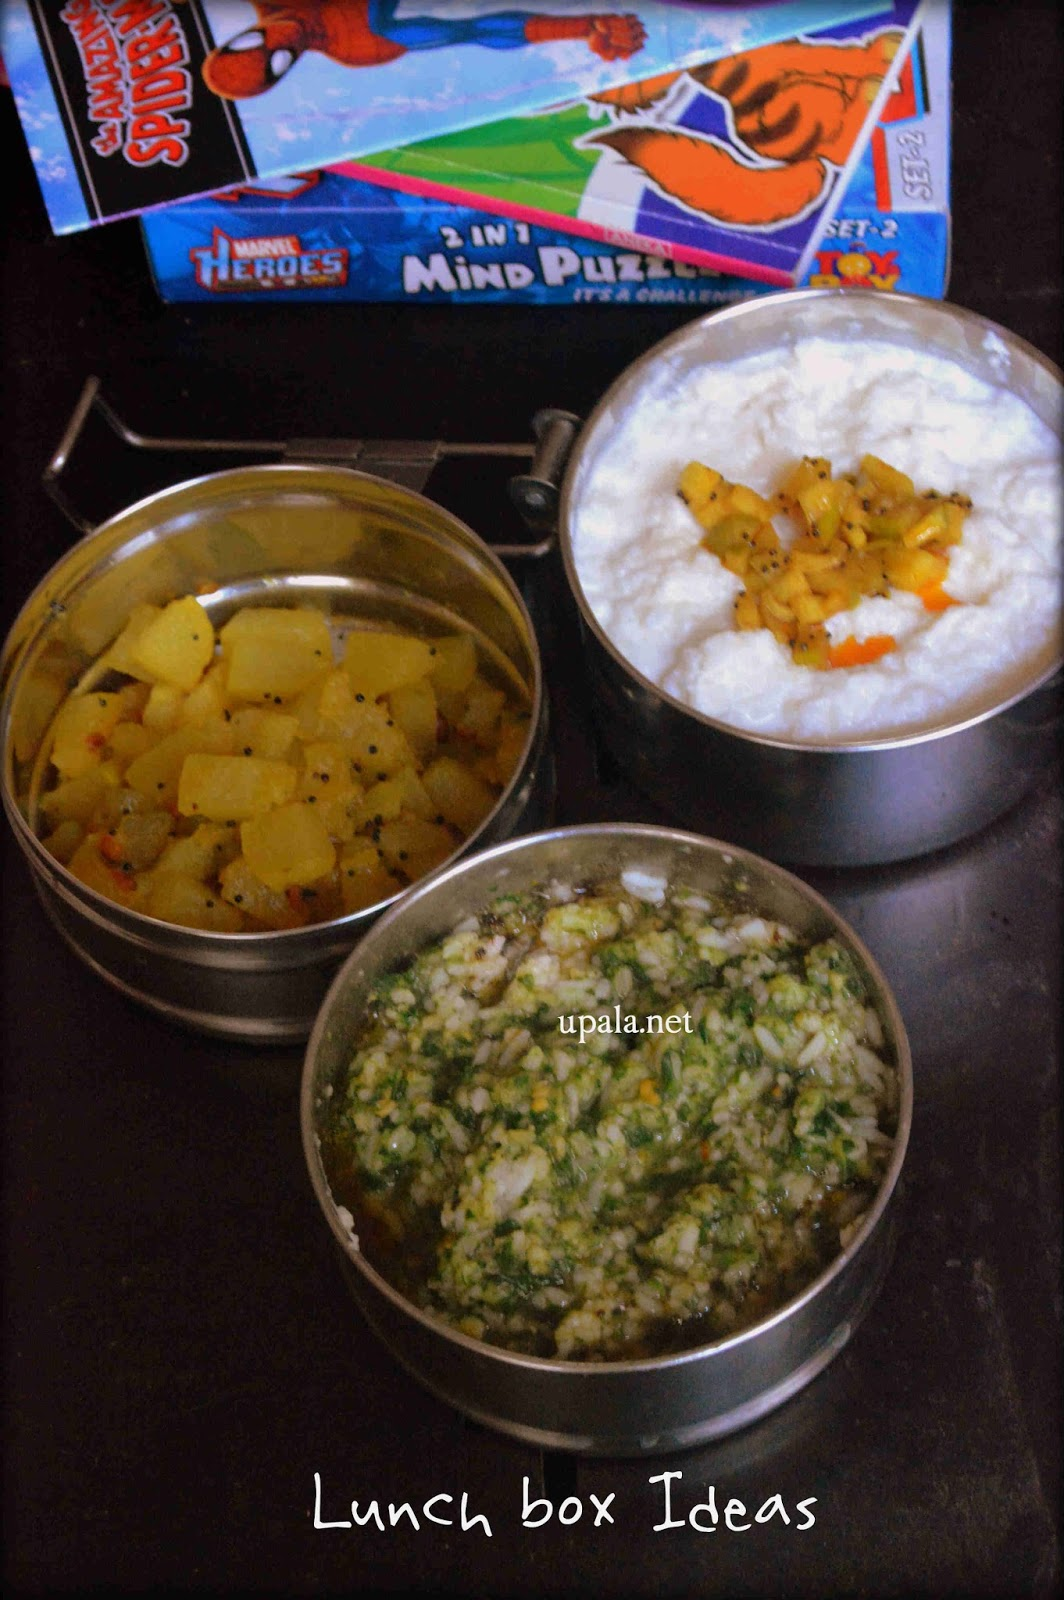 Upala keerai sadam poosanikai poriyal curd rice lunch box ideas keerai sadam poosanikai poriyal curd rice lunch box ideas forumfinder Choice Image